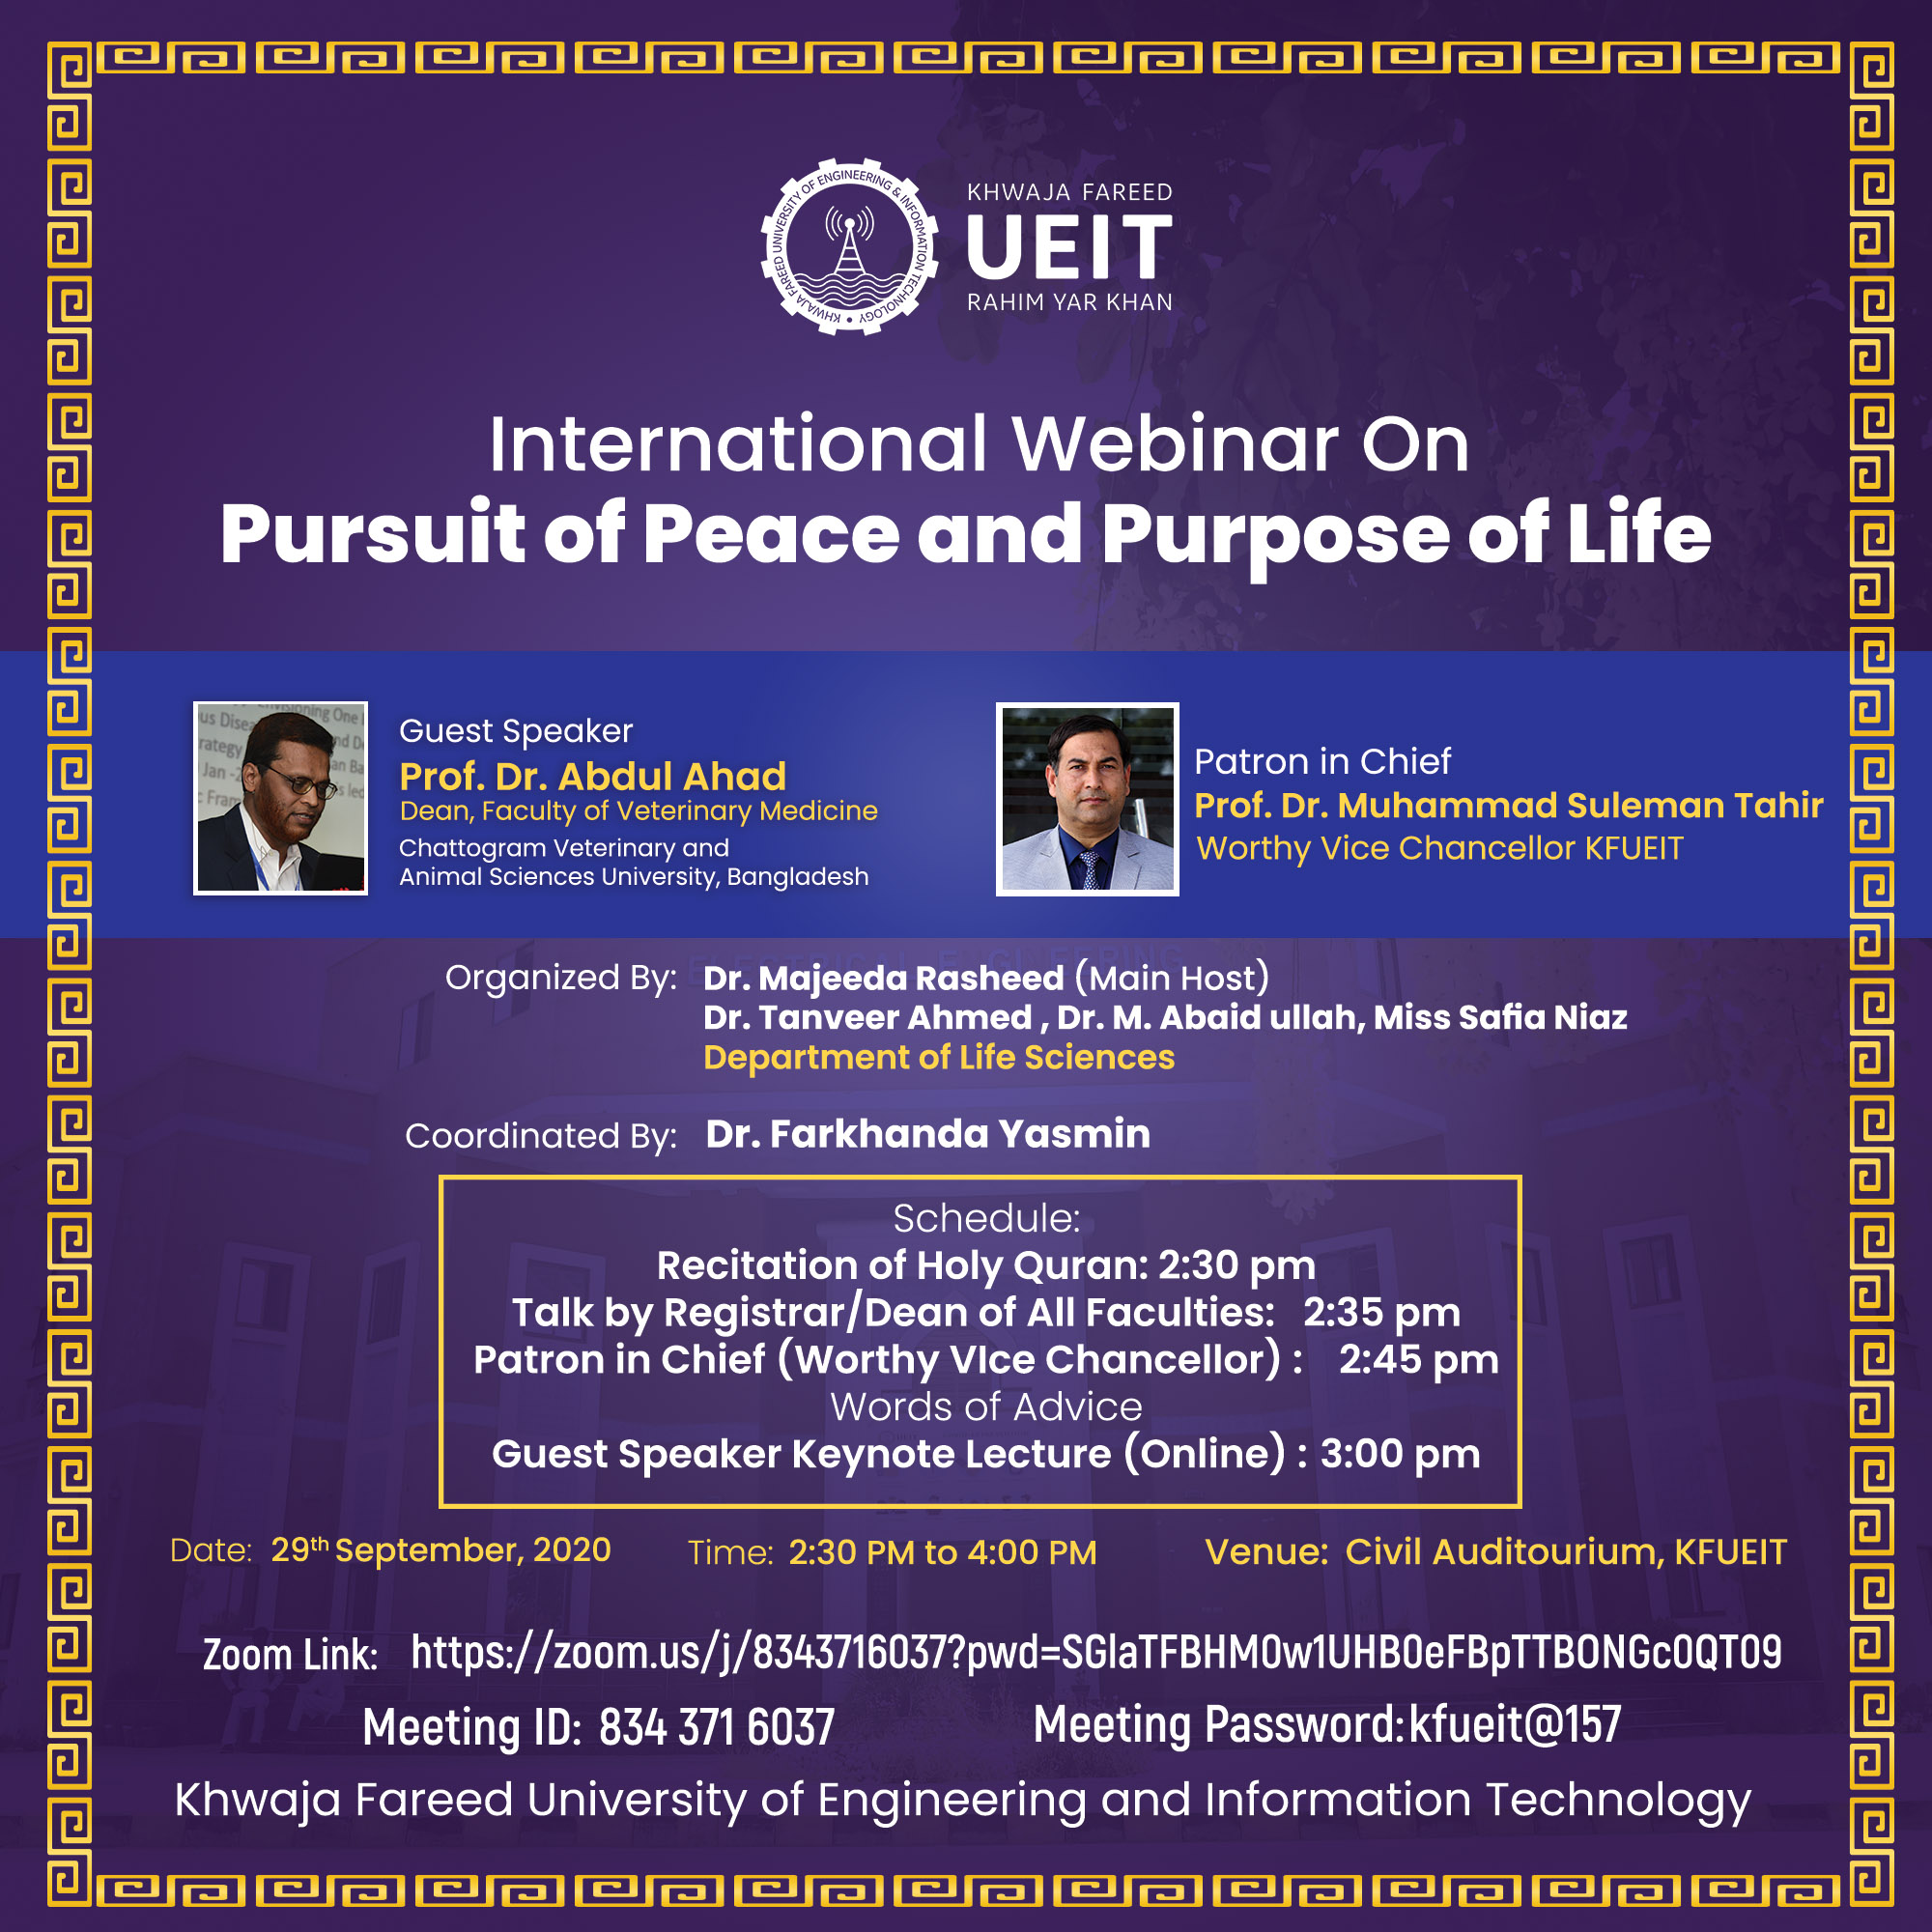 International Webinar on Pursuit of Peace and Purpose of Life